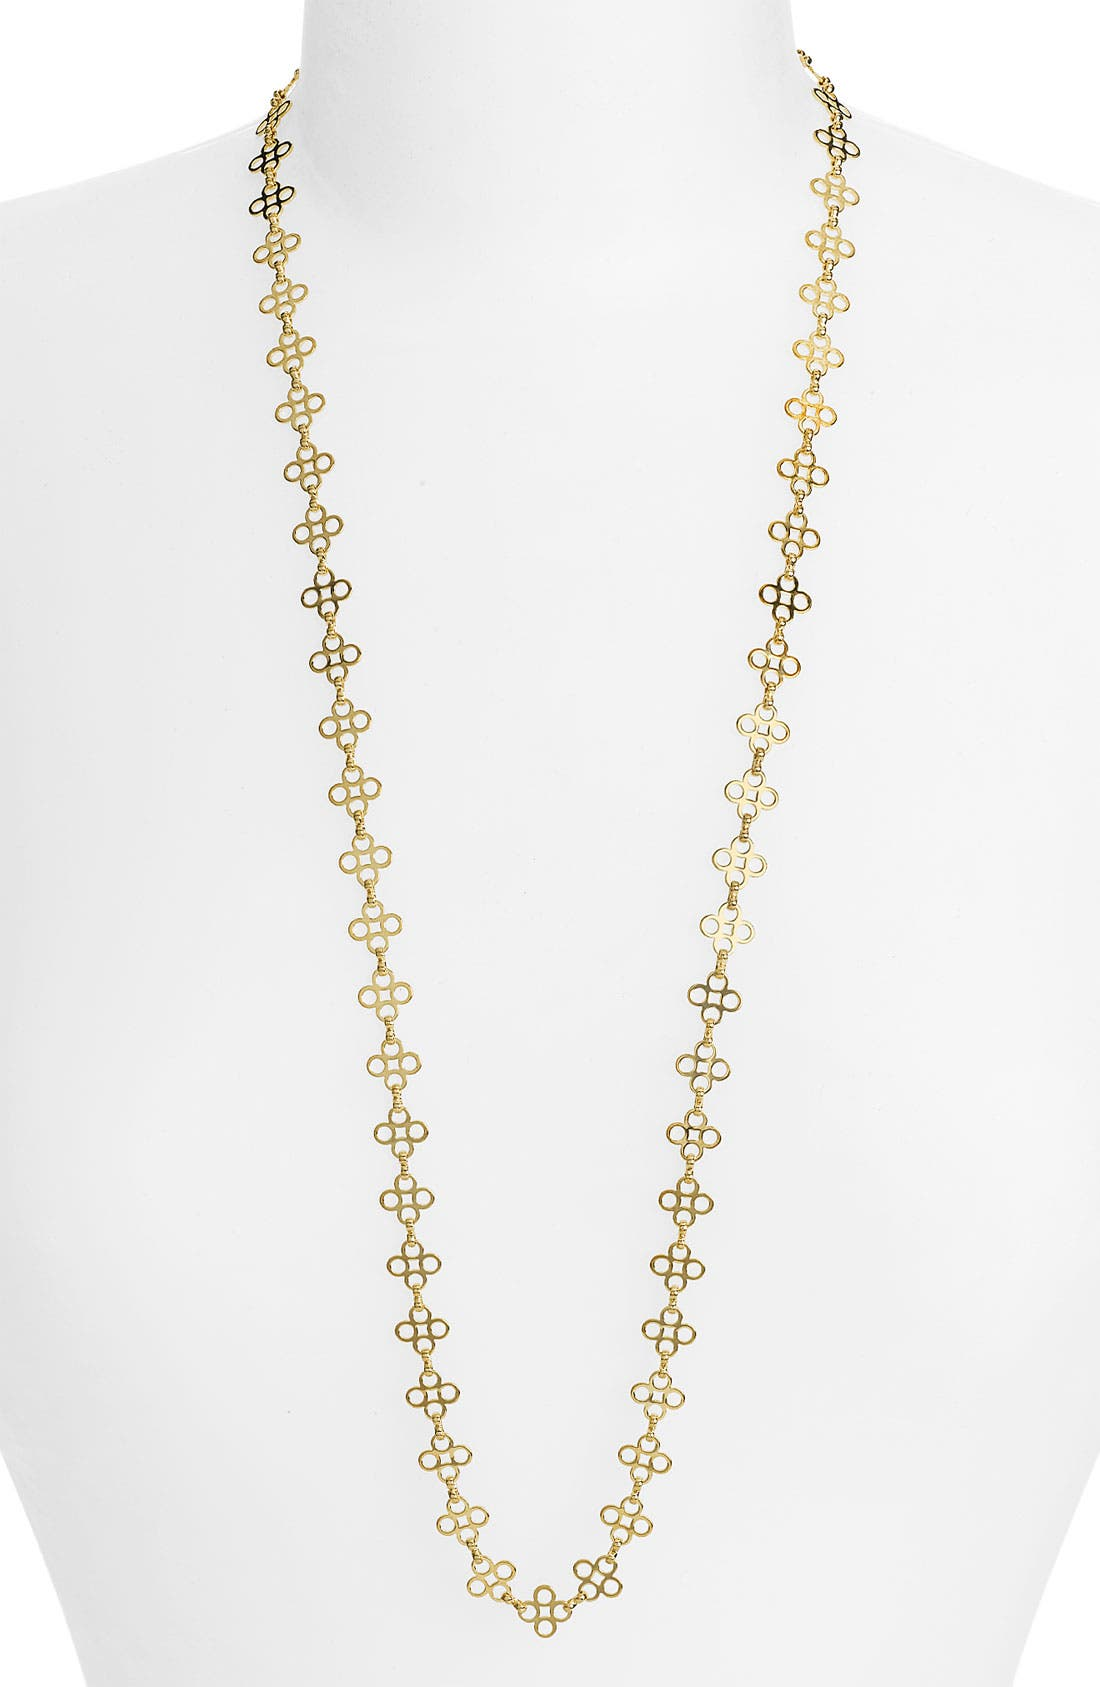 Alternate Image 1 Selected - MINI CLOVER CHAIN NECKLACE